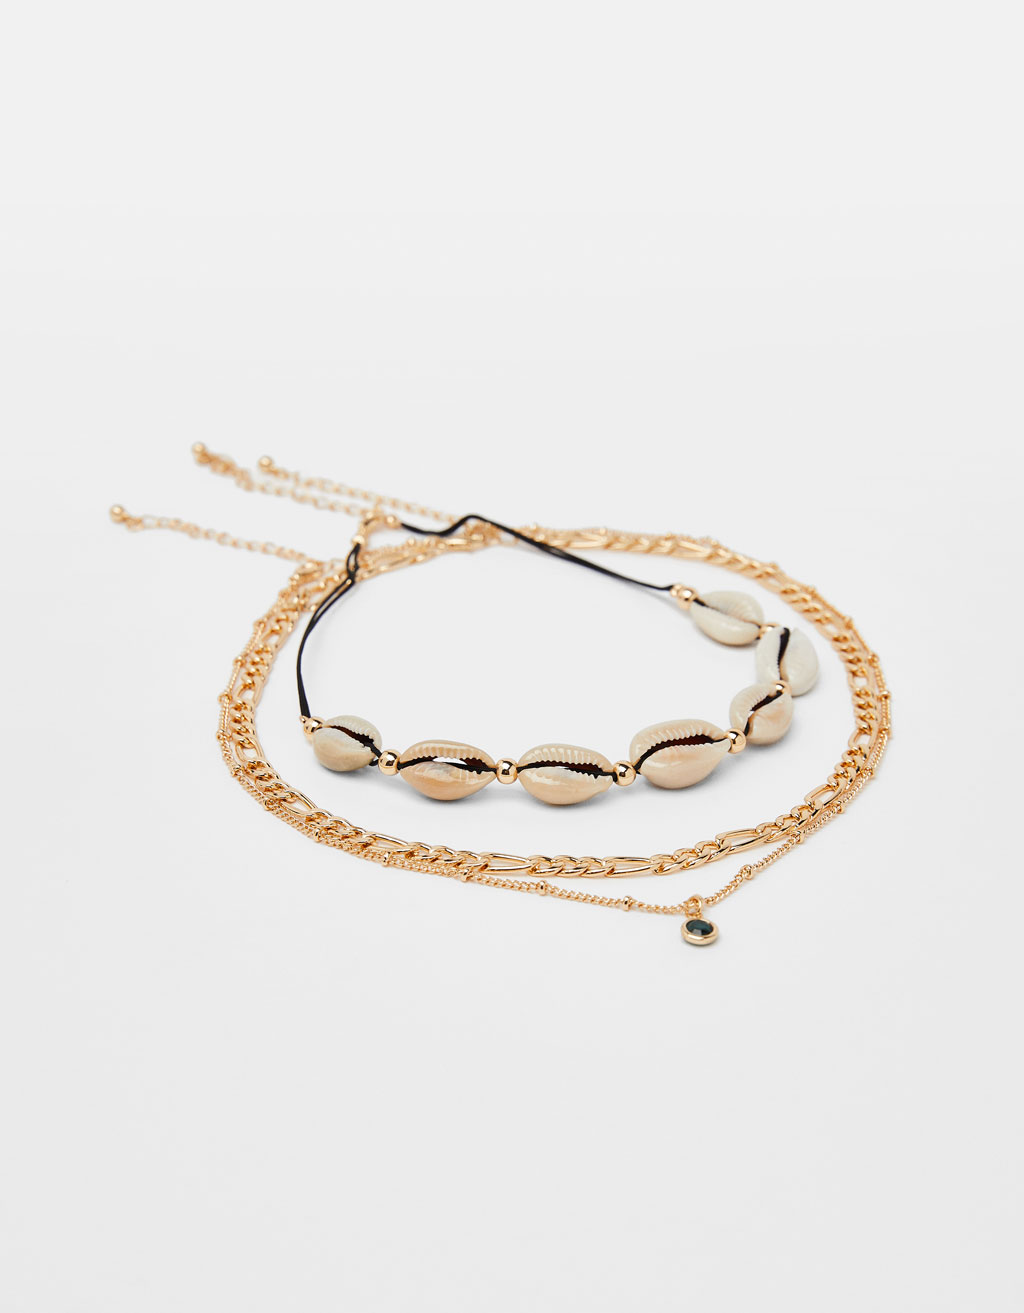 Collar chocker de conchas y cadena